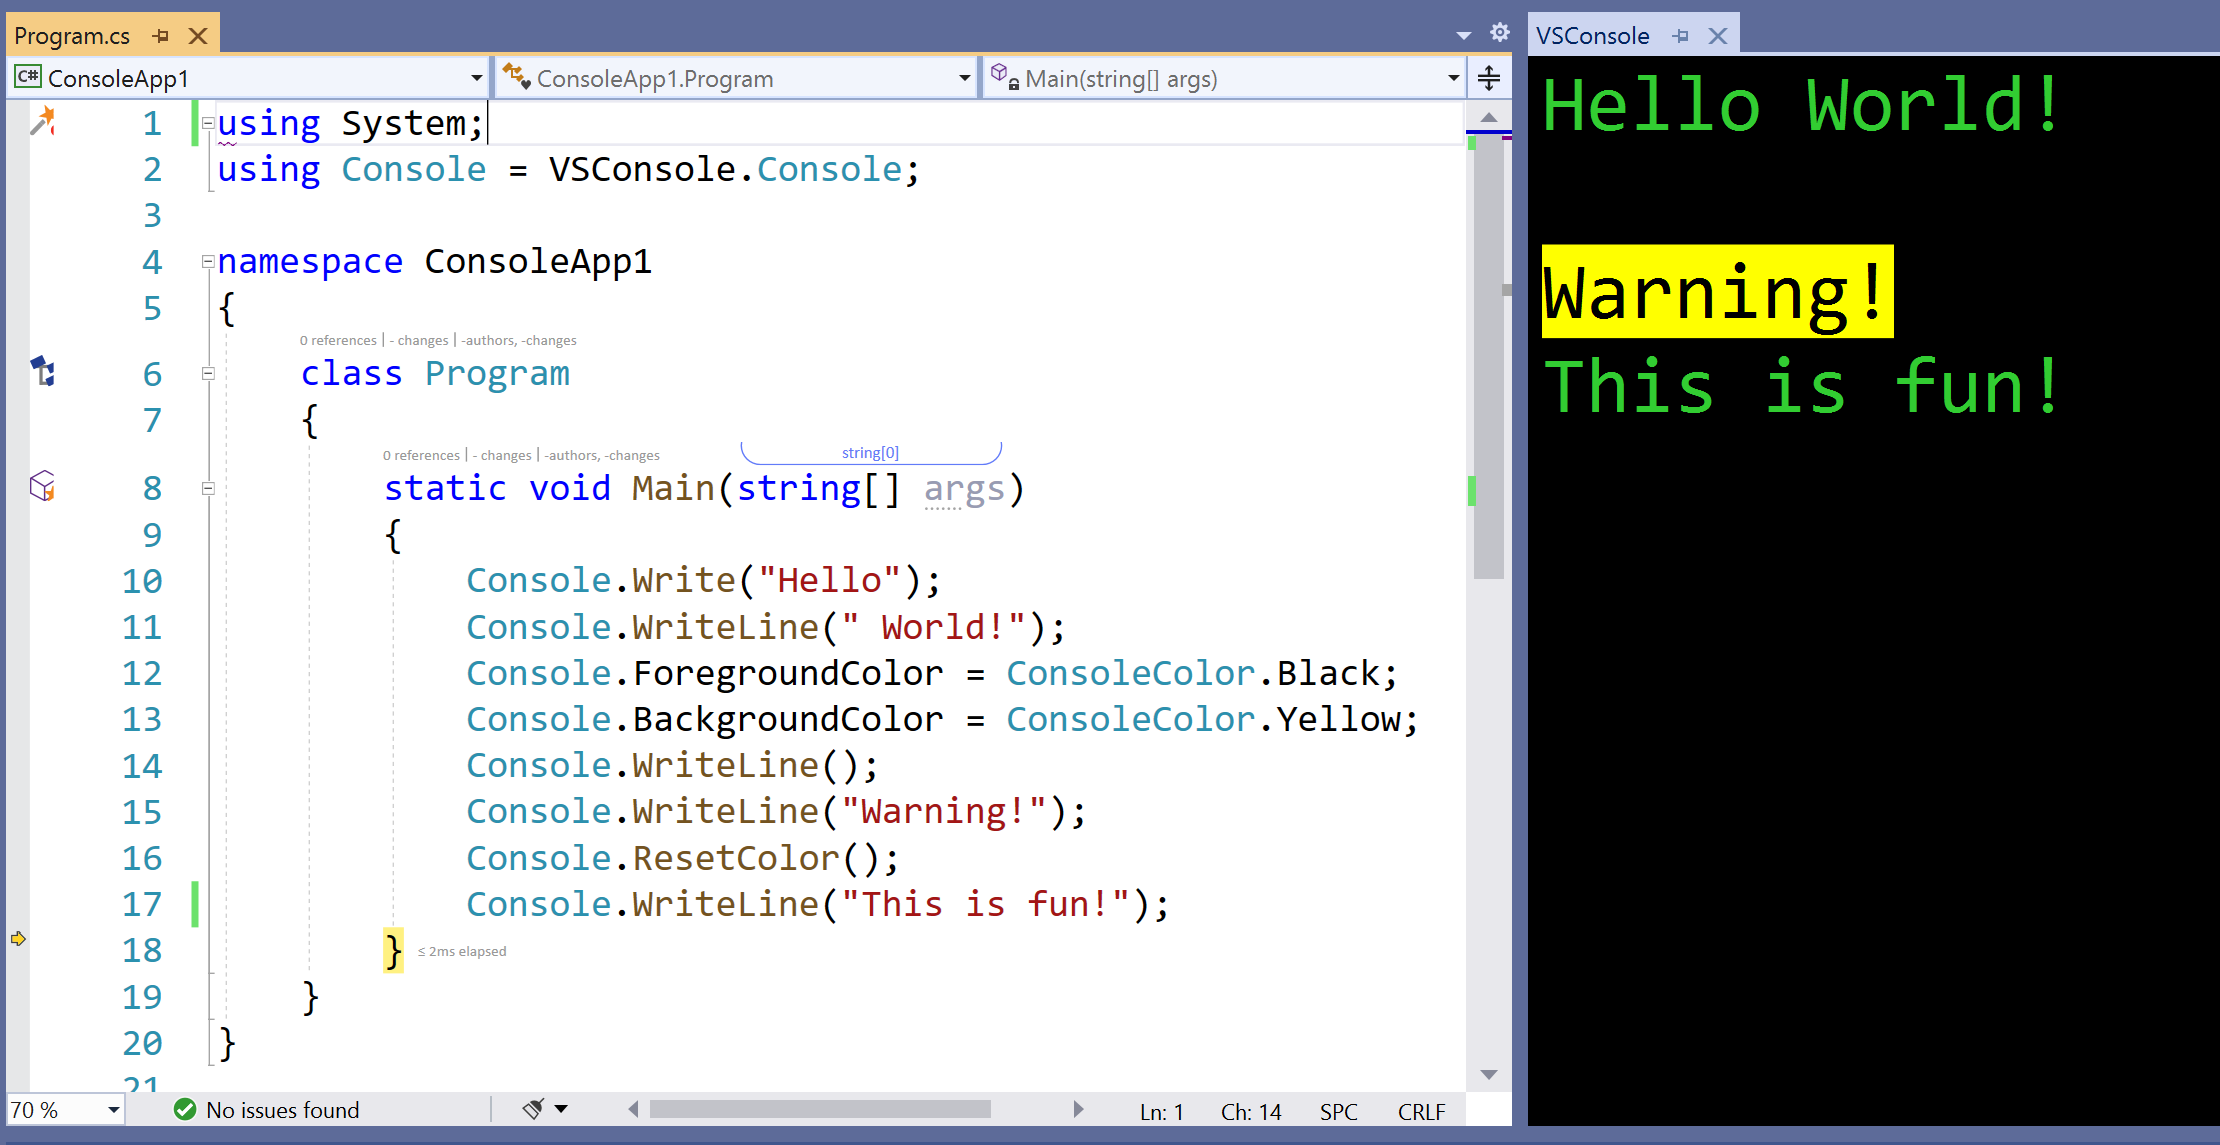 Screenshot showing example output in the VSConsole window inside Visual Studio